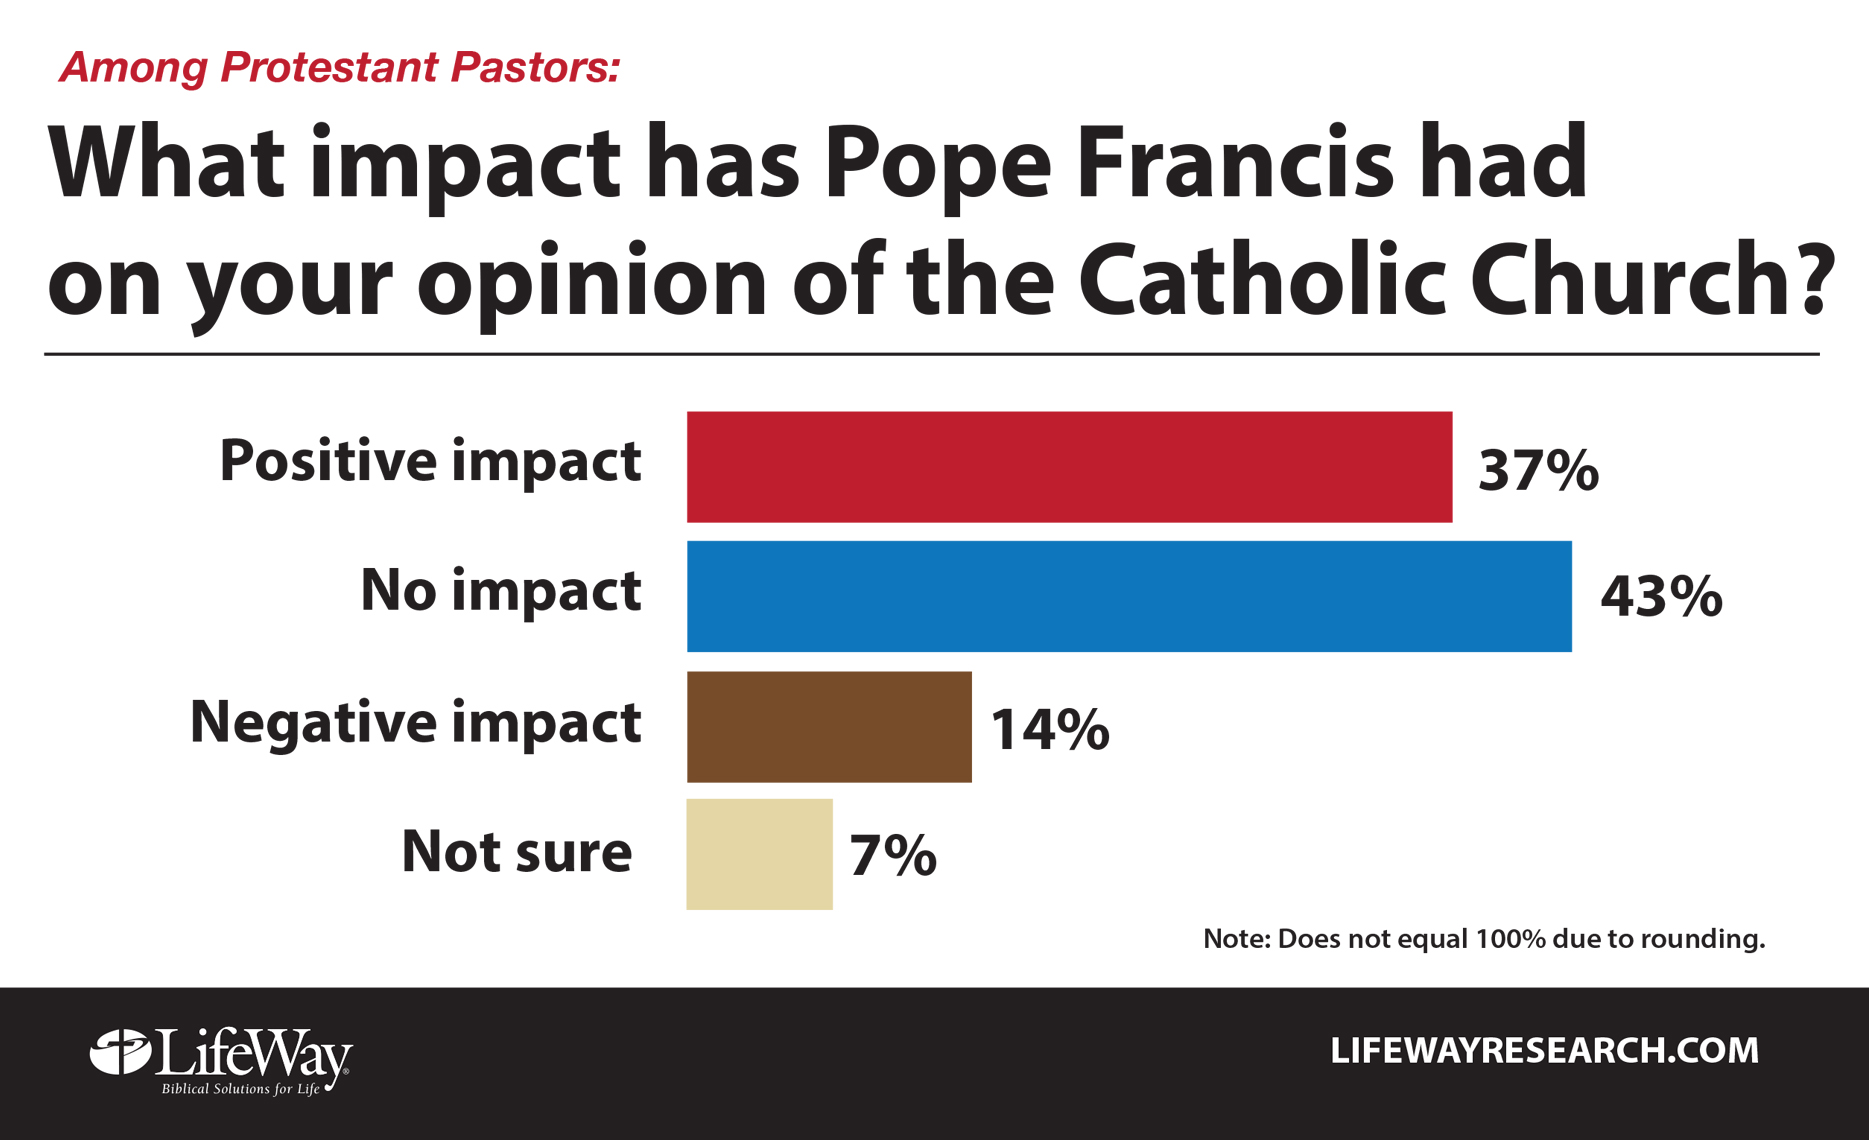 Pope Francis improves Protestant pastors' views of Catholic Church